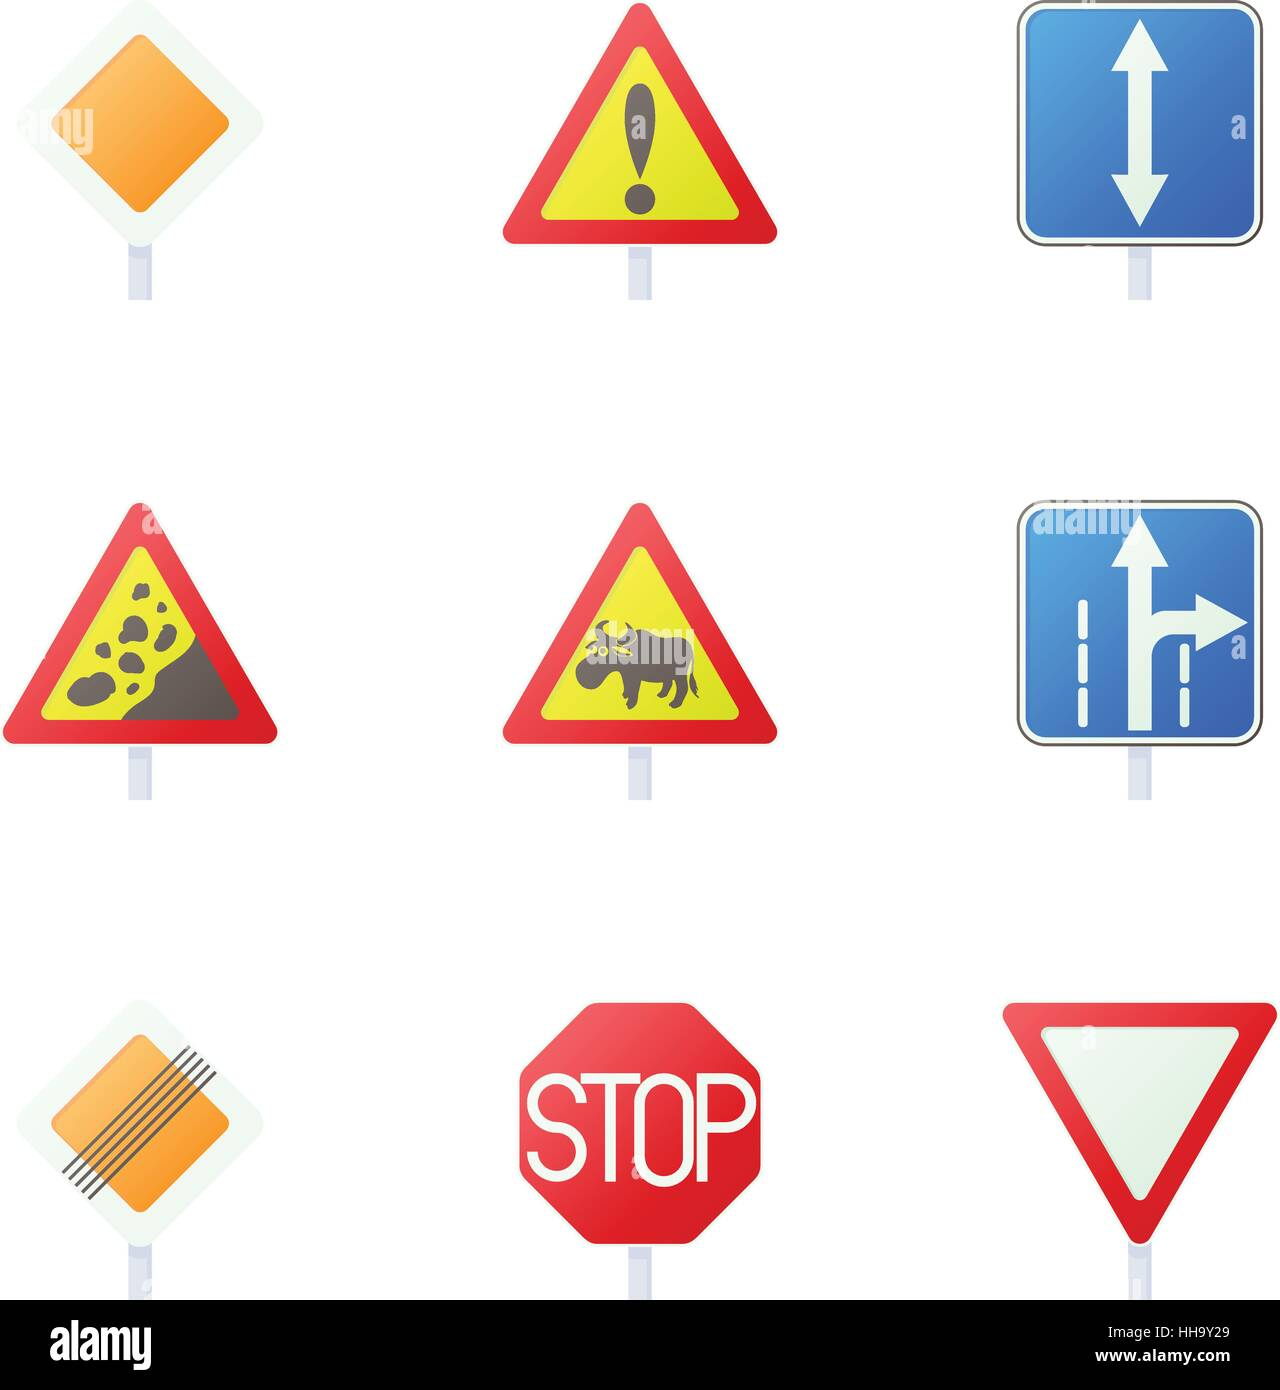 Road sign icons set, cartoon style Stock Vector